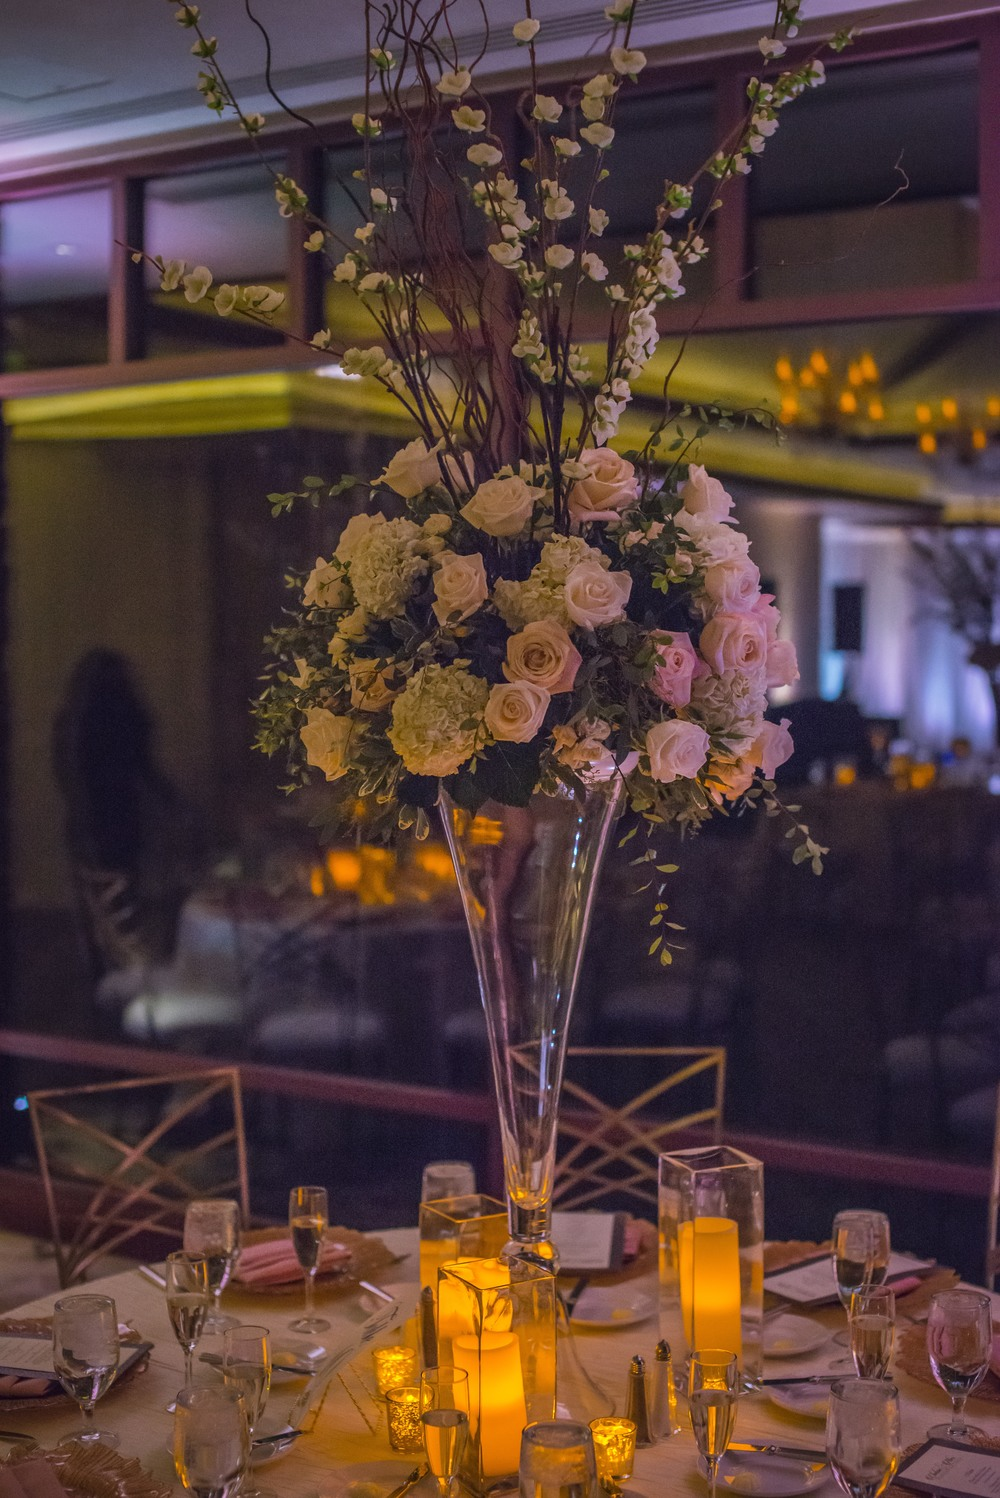 Tall centerpieces made of roses and hydrangea were set on the round tables.   Las Vegas Wedding Planner Andrea Eppolito designed this luxury wedding at Red Rock Country Club. By Dzign handled the decor shot by wedding photographer Ella Gagiano.